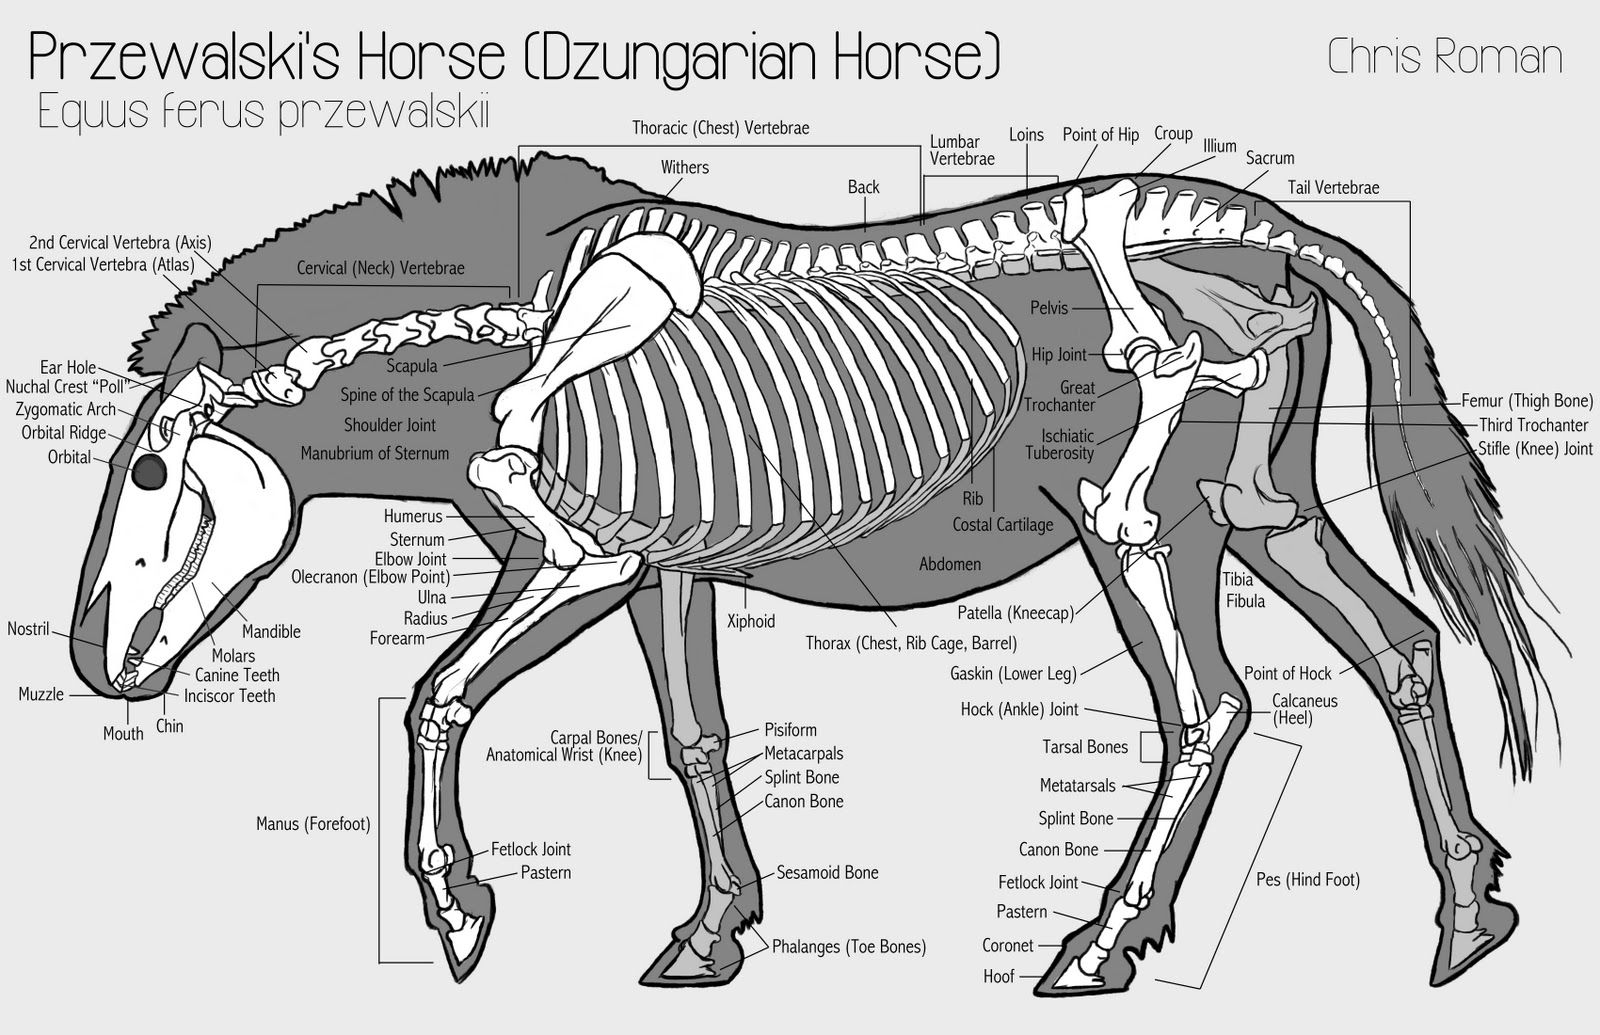 Horse Skeletal Diagram Of The Head - Trusted Wiring Diagram •